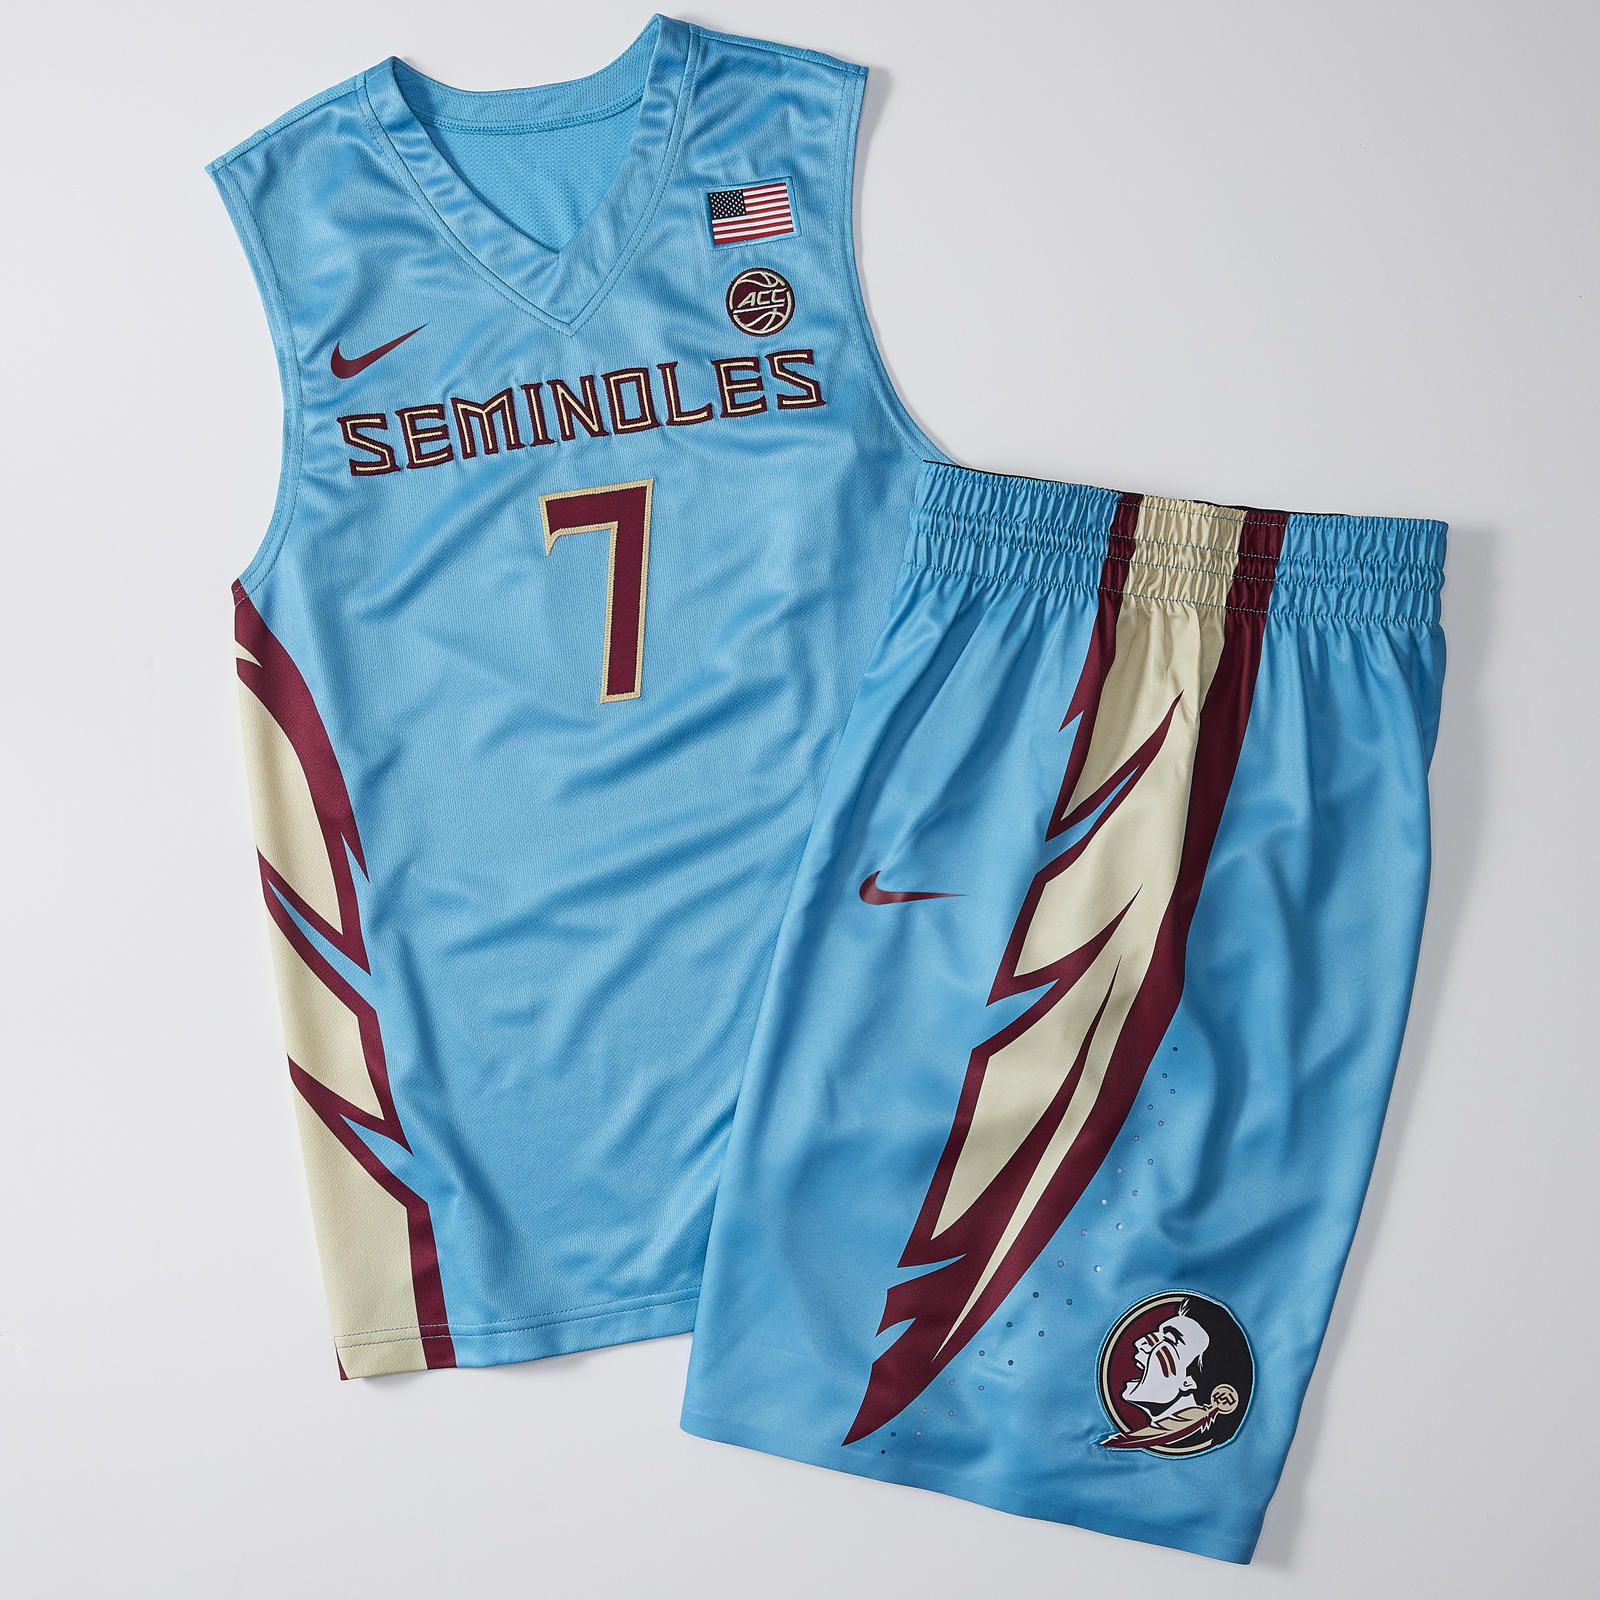 low priced b173f ce7a8 The Nike N7 College Basketball Uniform: More Than A ...